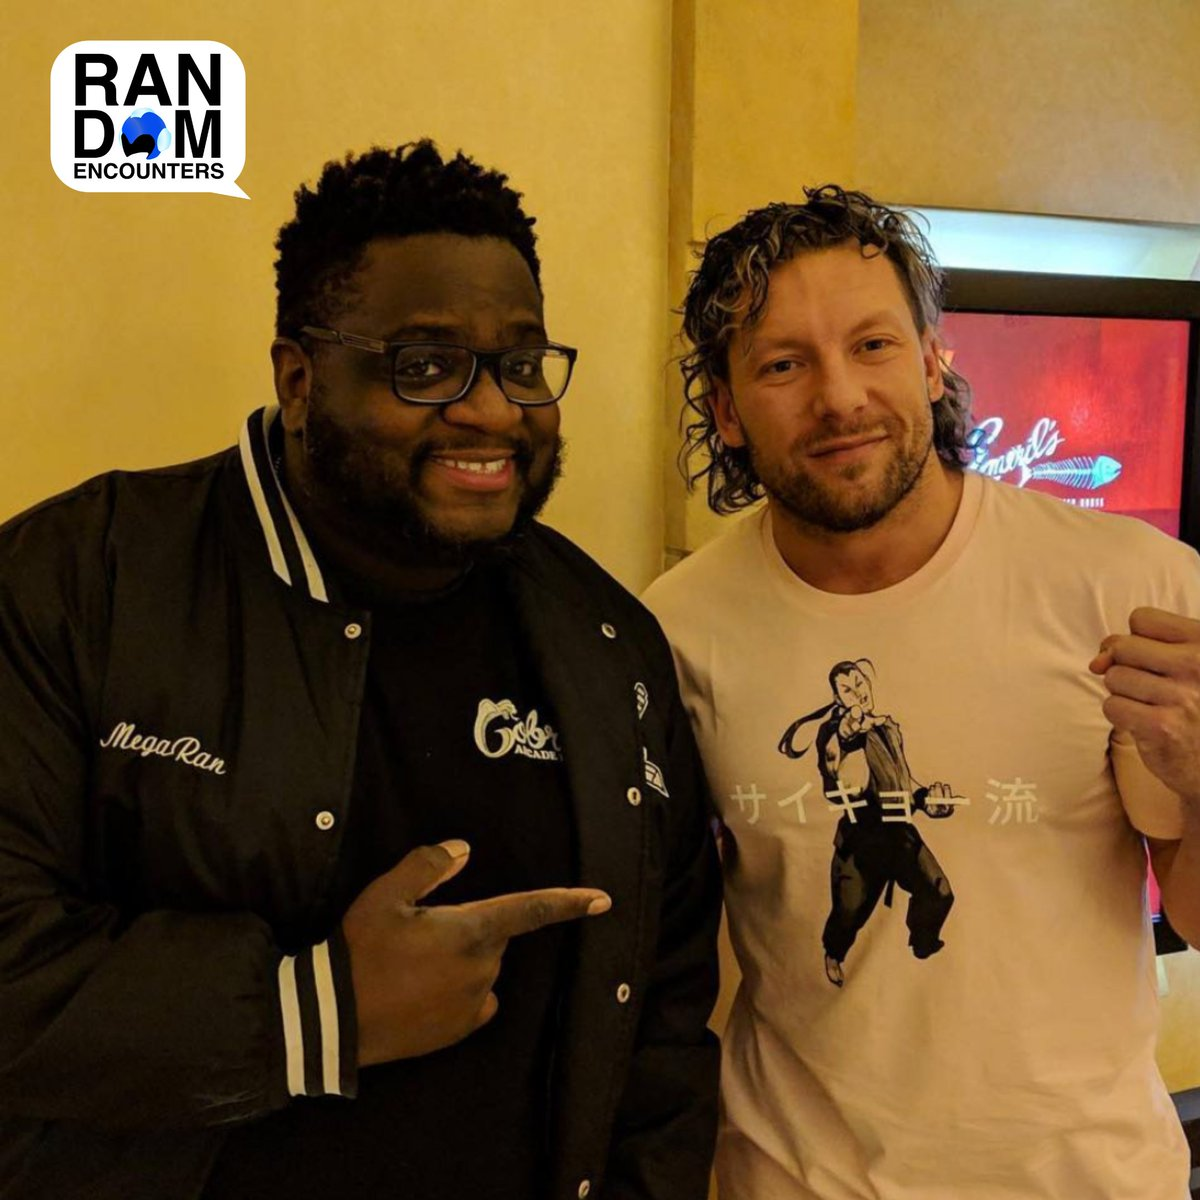 Pow. Check out Part 2 of my chat with @KennyOmegamanX! Get it at your favorite podcast destination now. anchor.fm/megaran